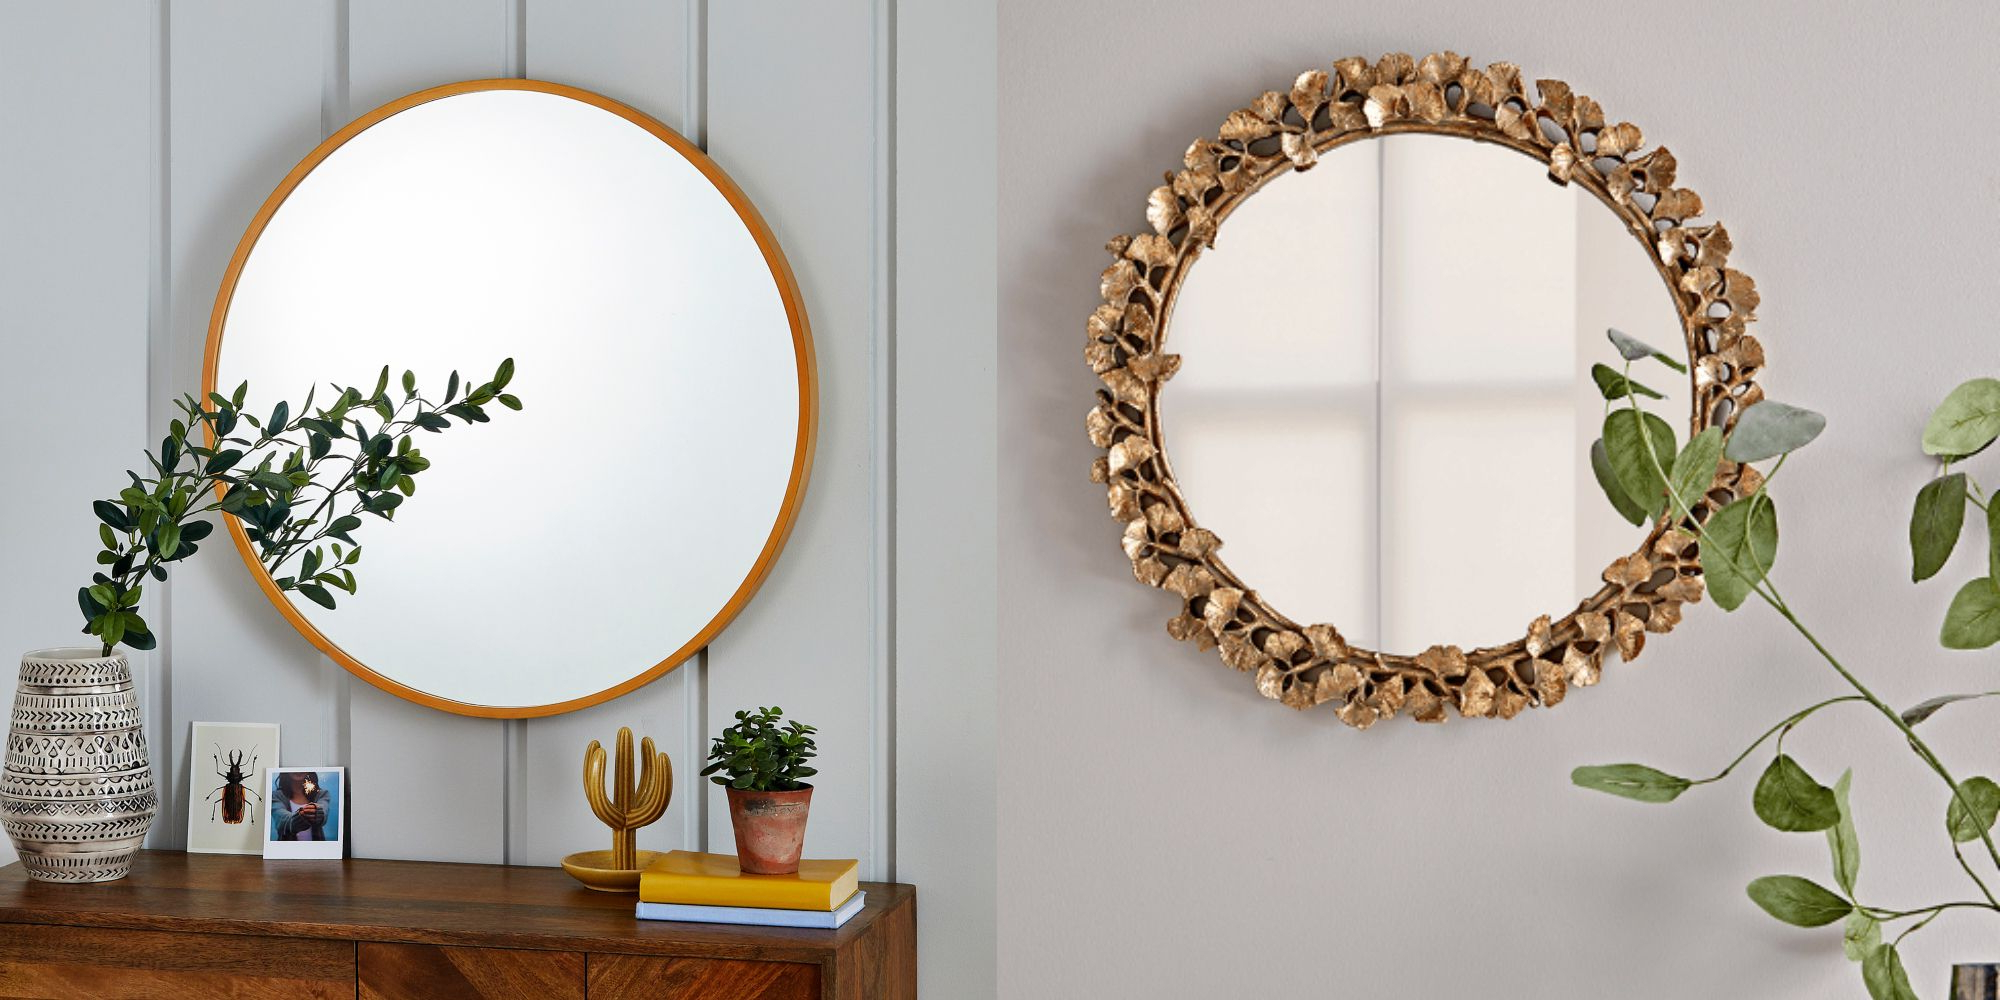 Newest Liberal Round Wall Mirror 7 Statement Mirrors To Buy For Your Home In Point Reyes Molten Round Wall Mirrors (View 4 of 20)